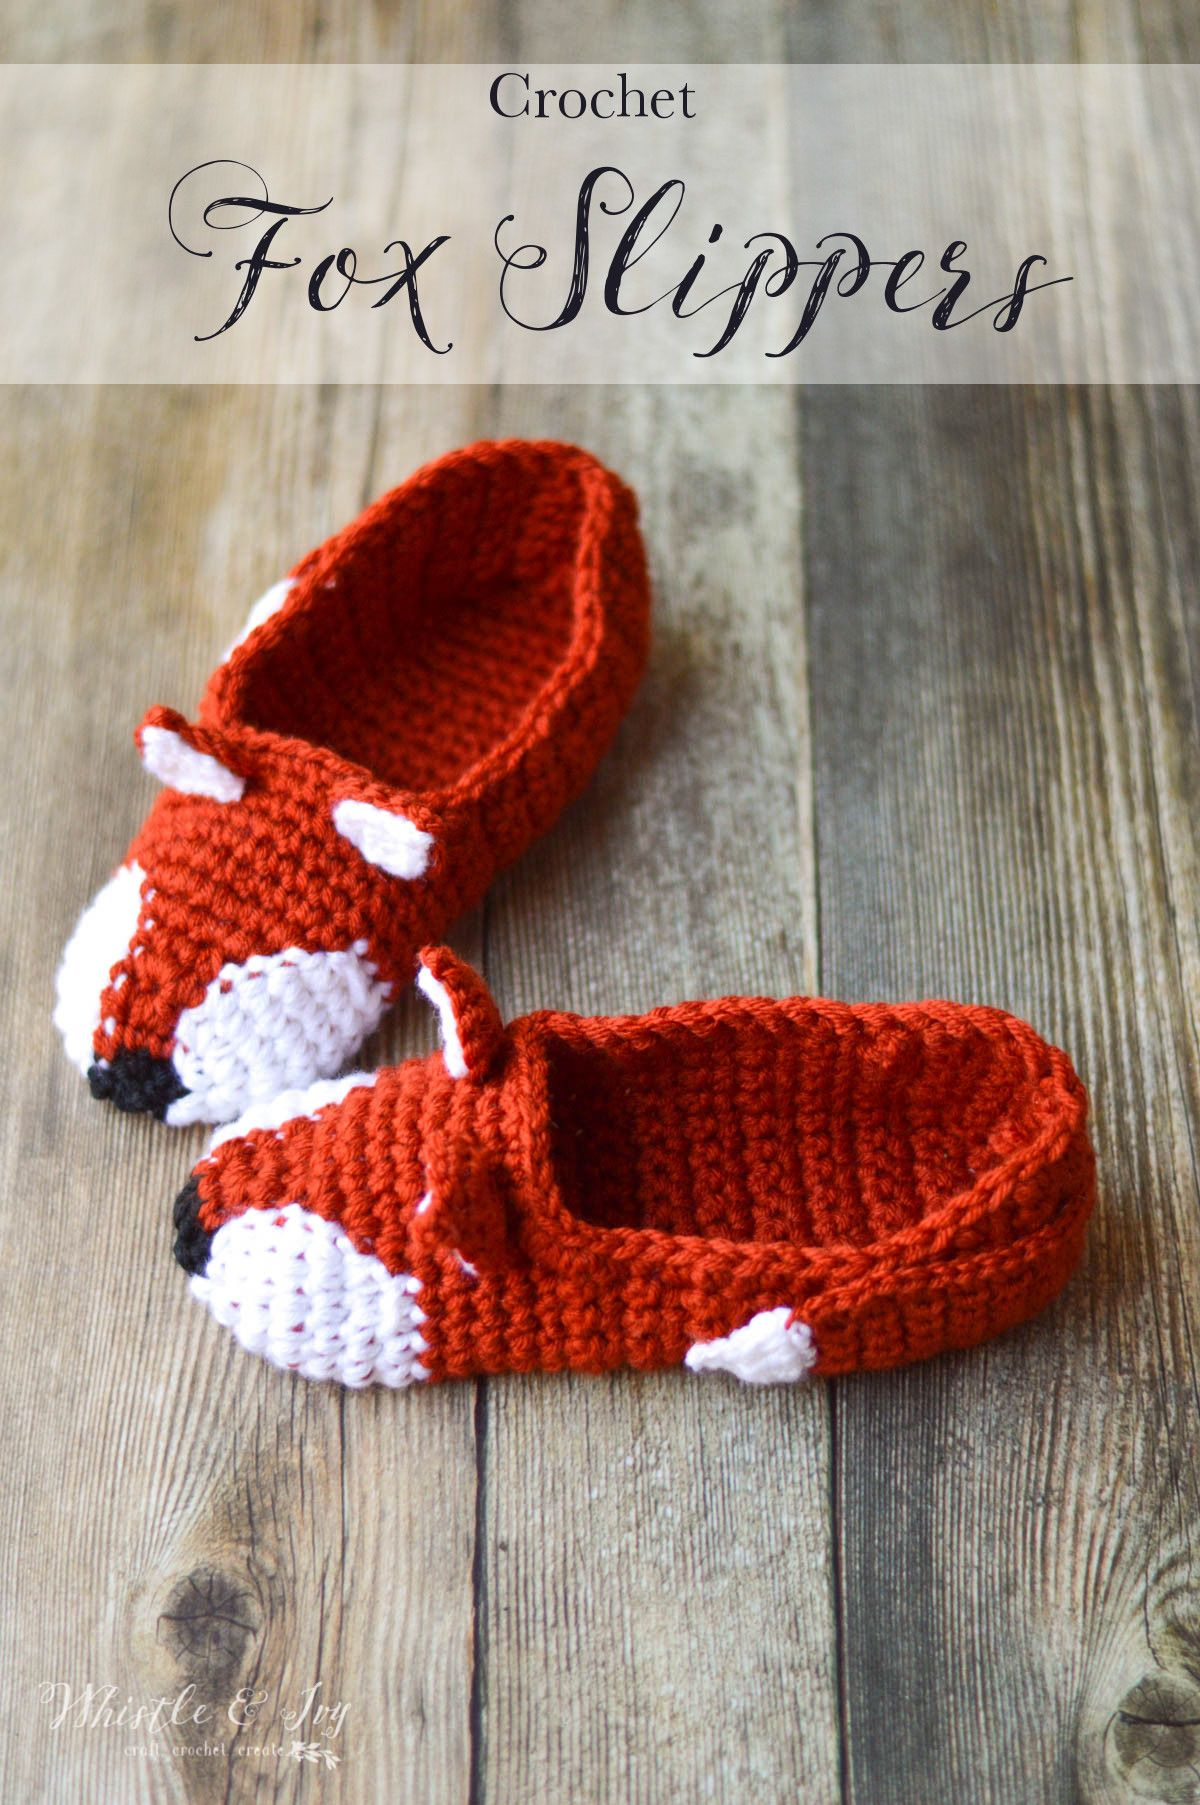 7ea4aeb2938ec Crochet Fox Slippers - These cute woodland slippers are easy to work up and  are make with two strands of yarn